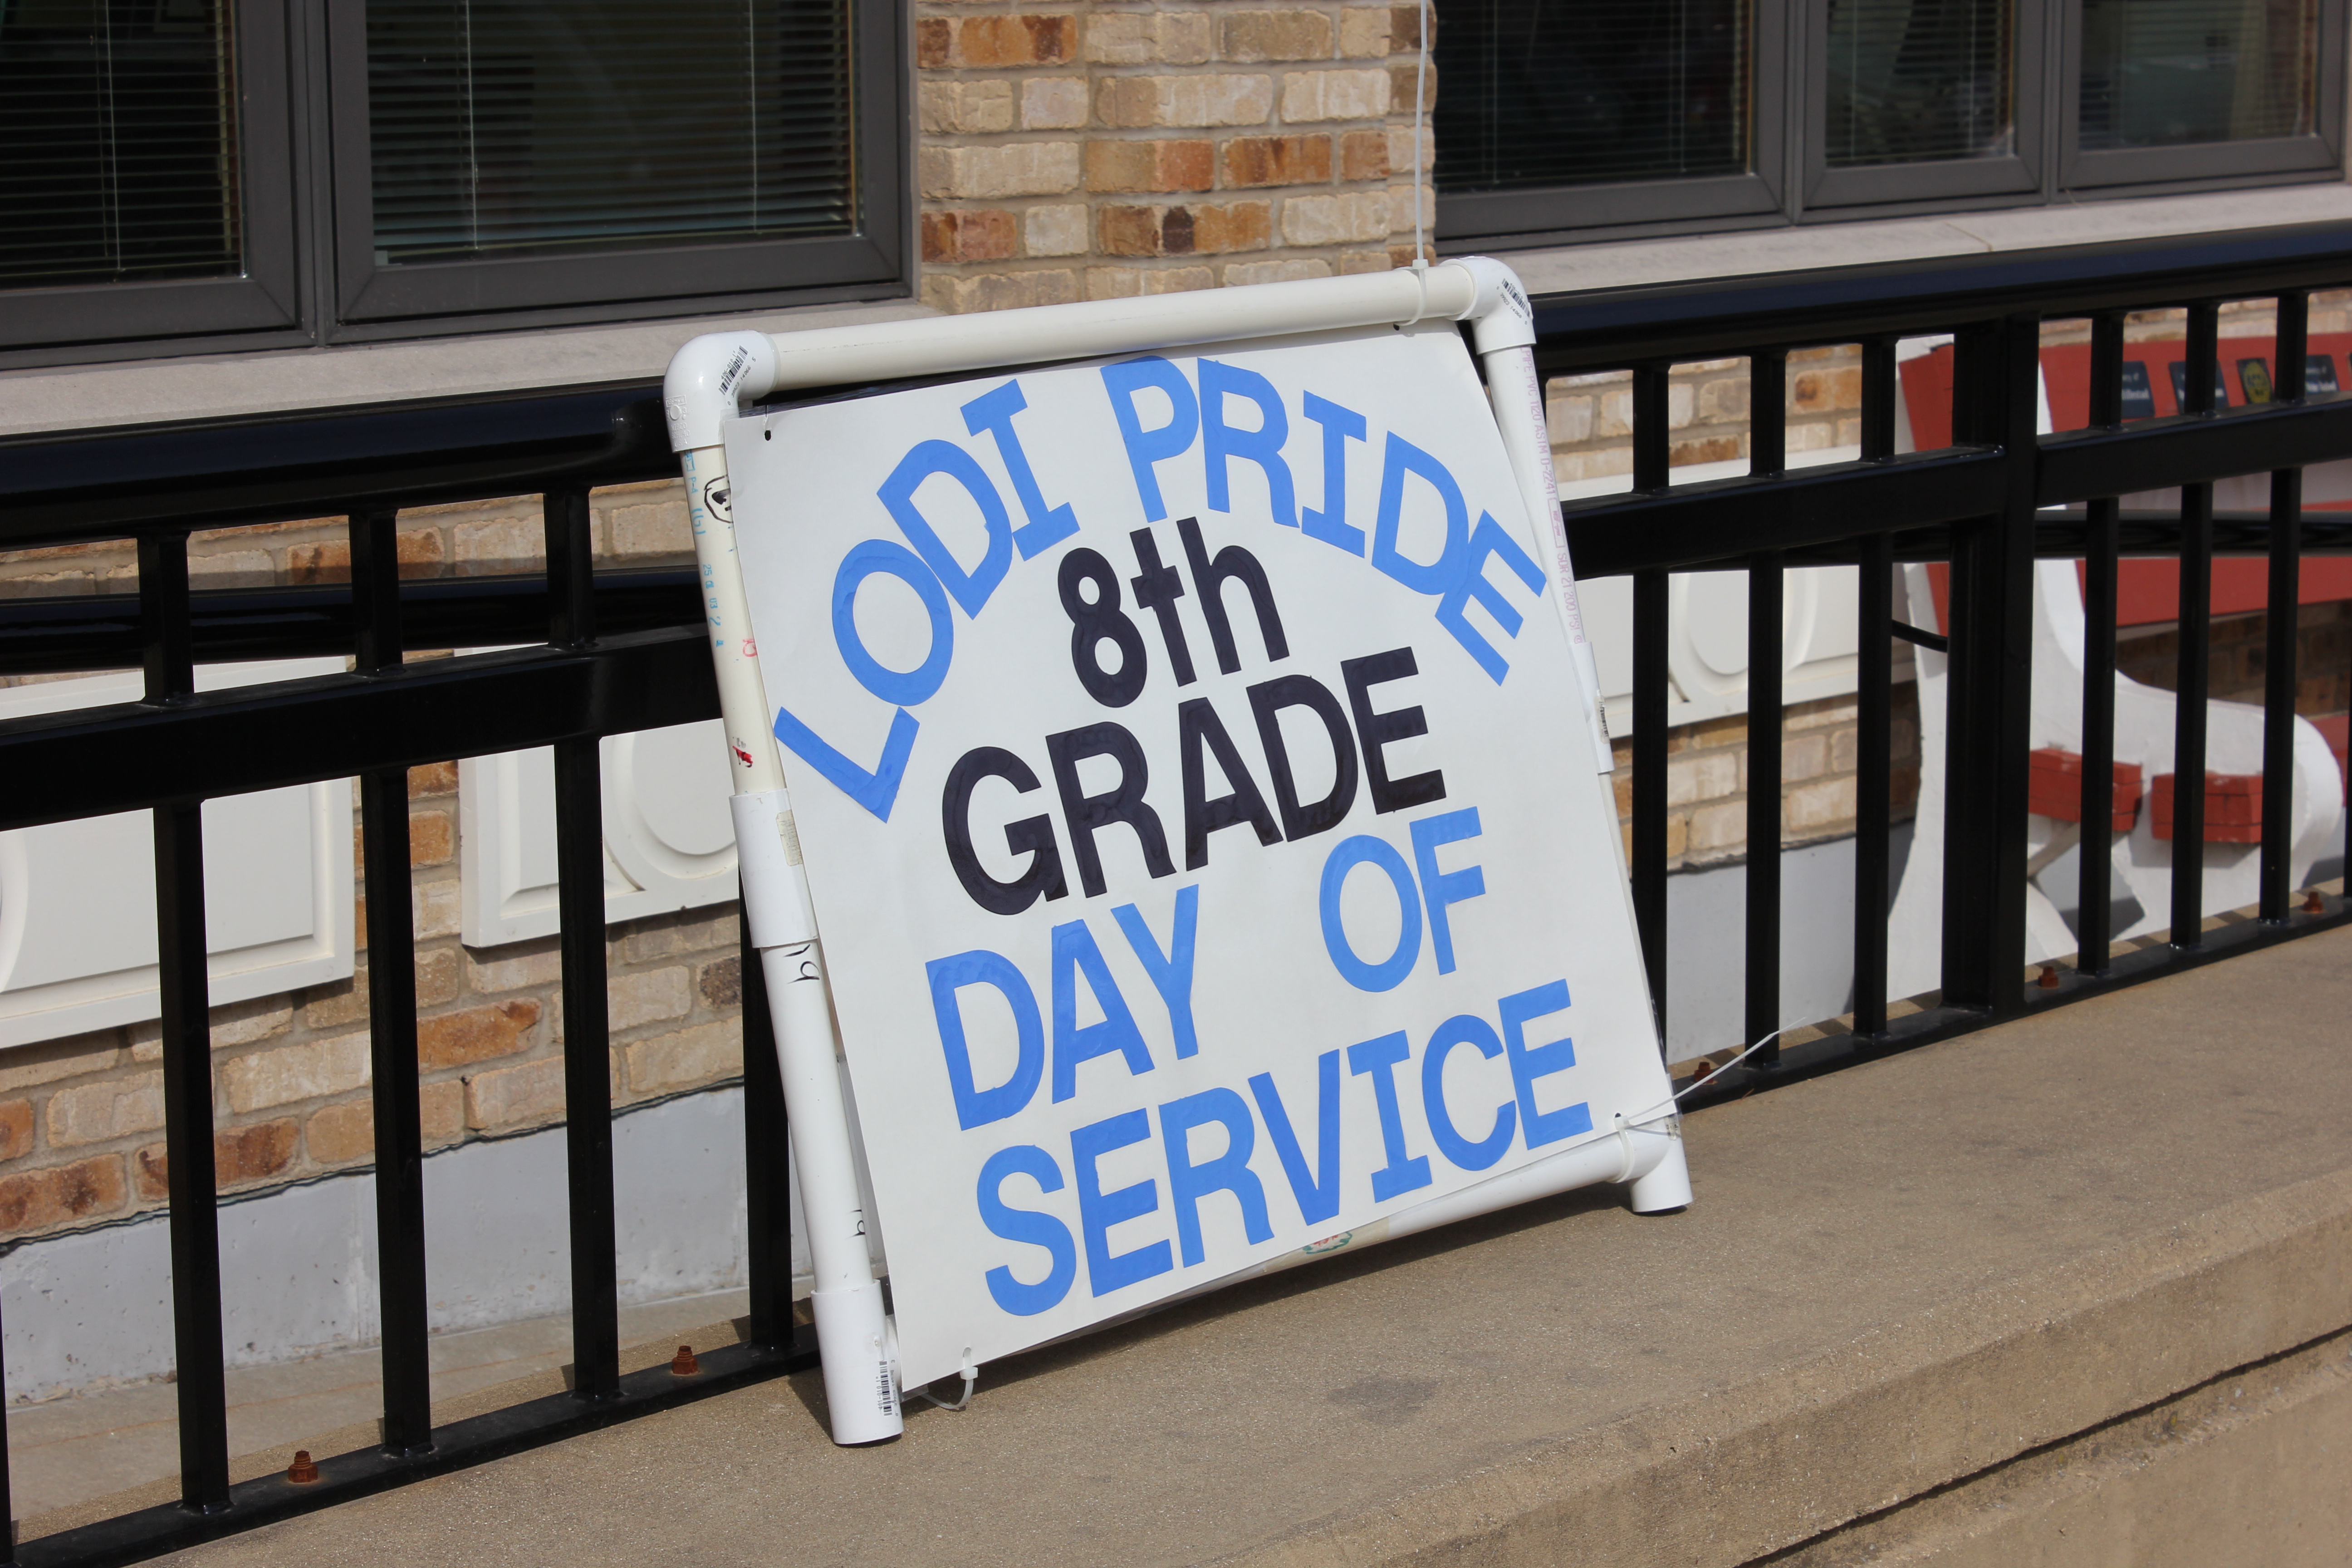 Lodi Pride Day of Service at City Hall and Police Station